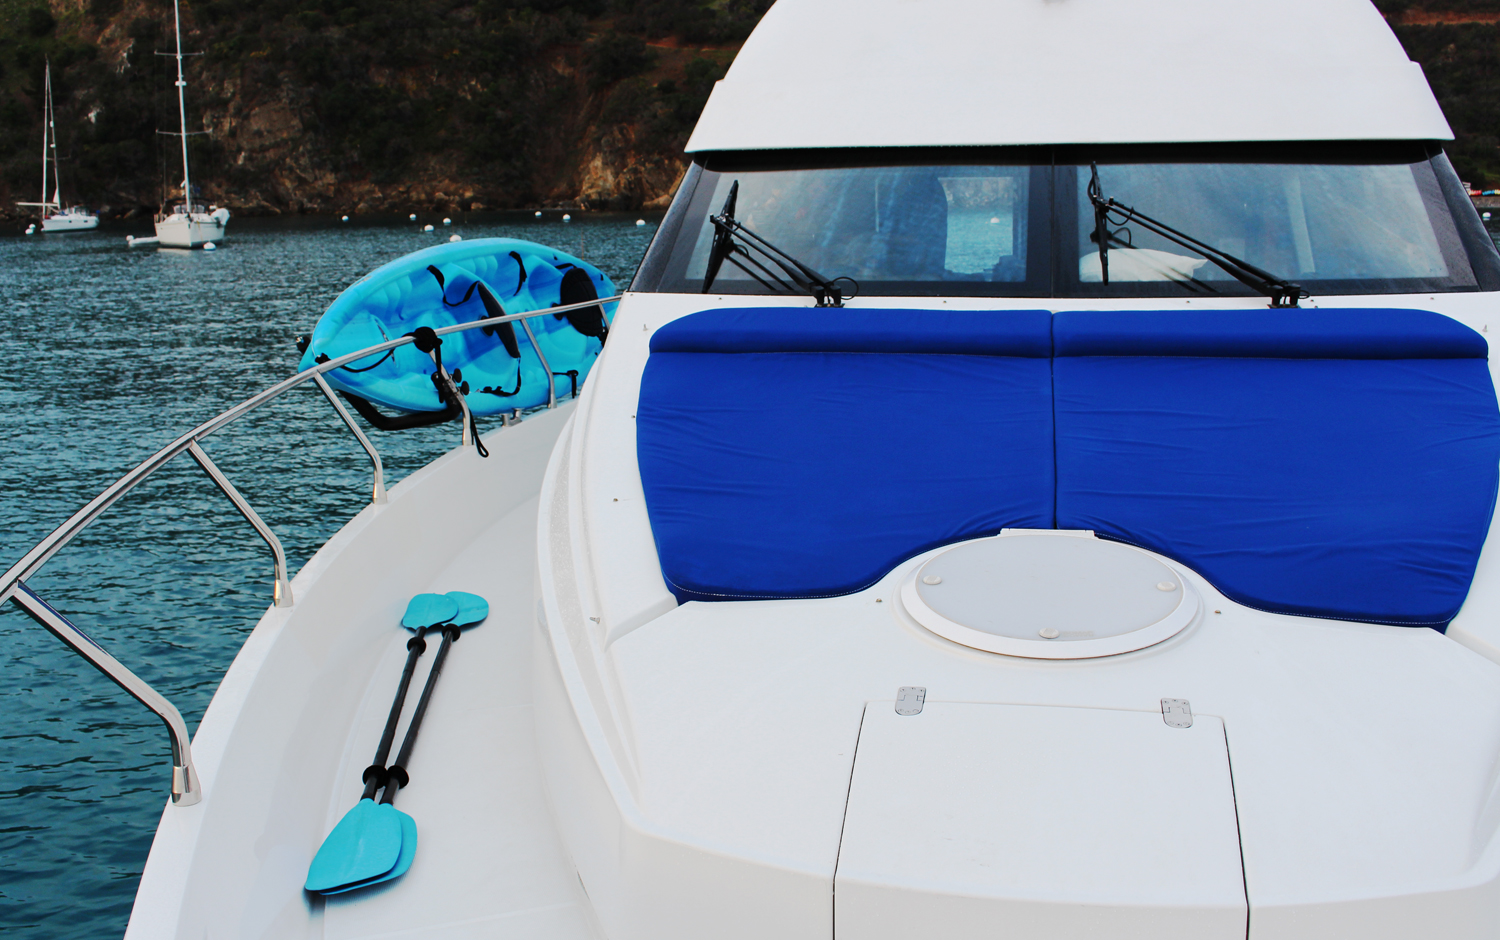 Packages charter yacht la for 11620 wilshire blvd 9th floor los angeles ca 90025